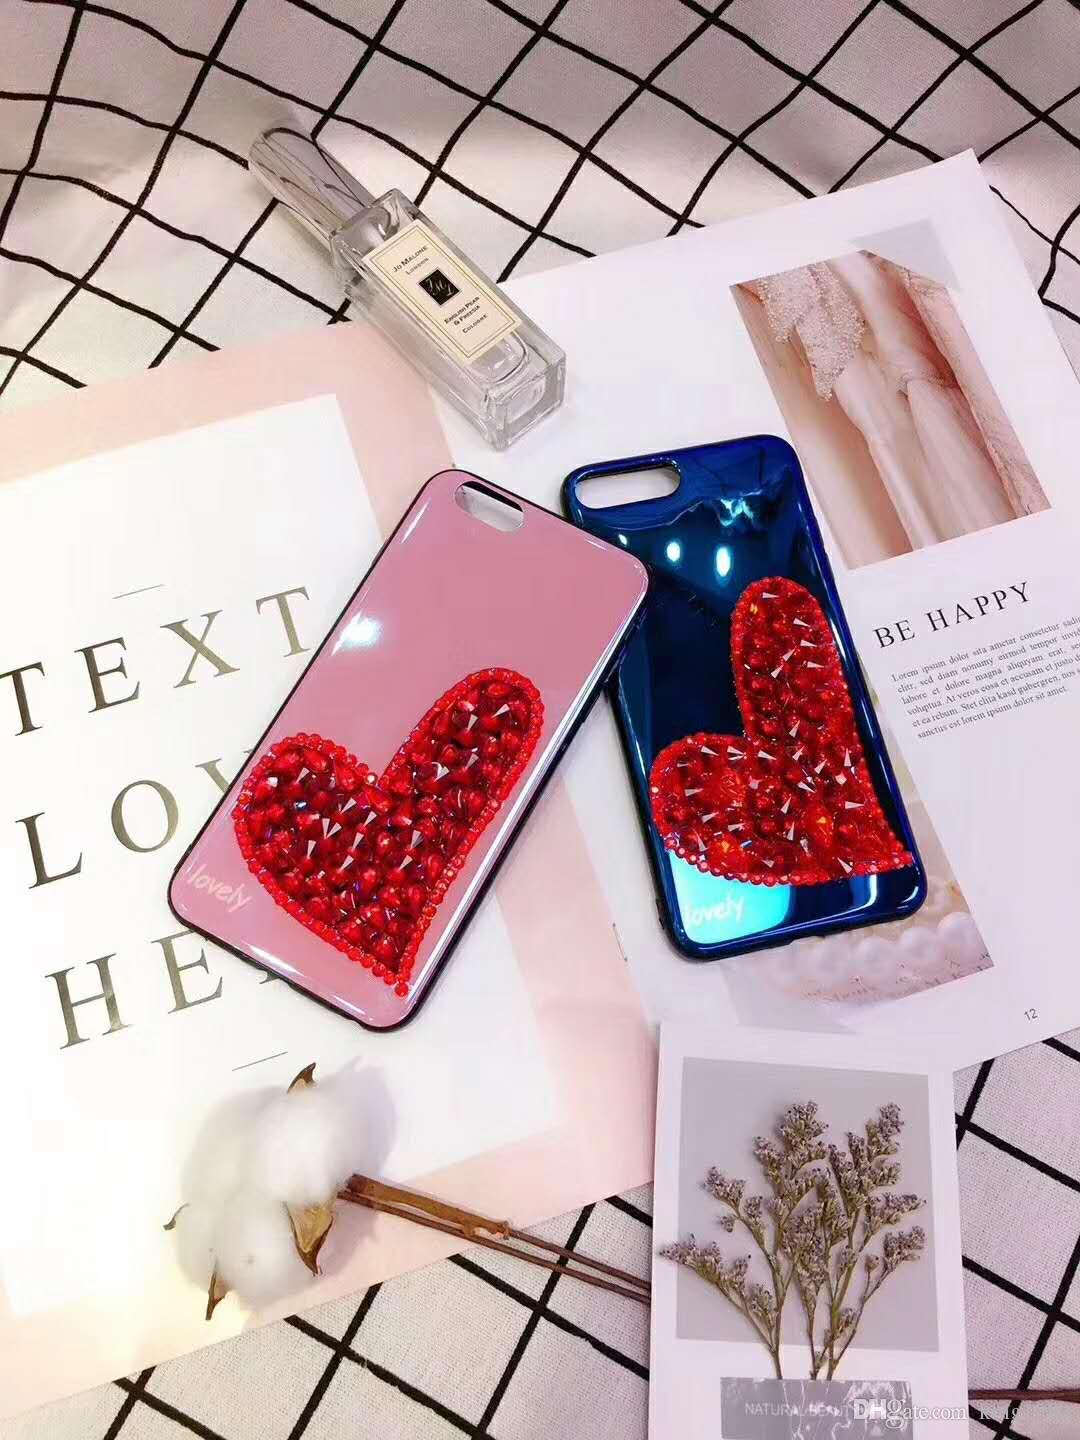 Fashion 3D Crystals Blue-ray Diamond Sparkle Jeweled Bling Heart Phone Cover Case for Apple iPhone 6 6S 7 8 Plus X